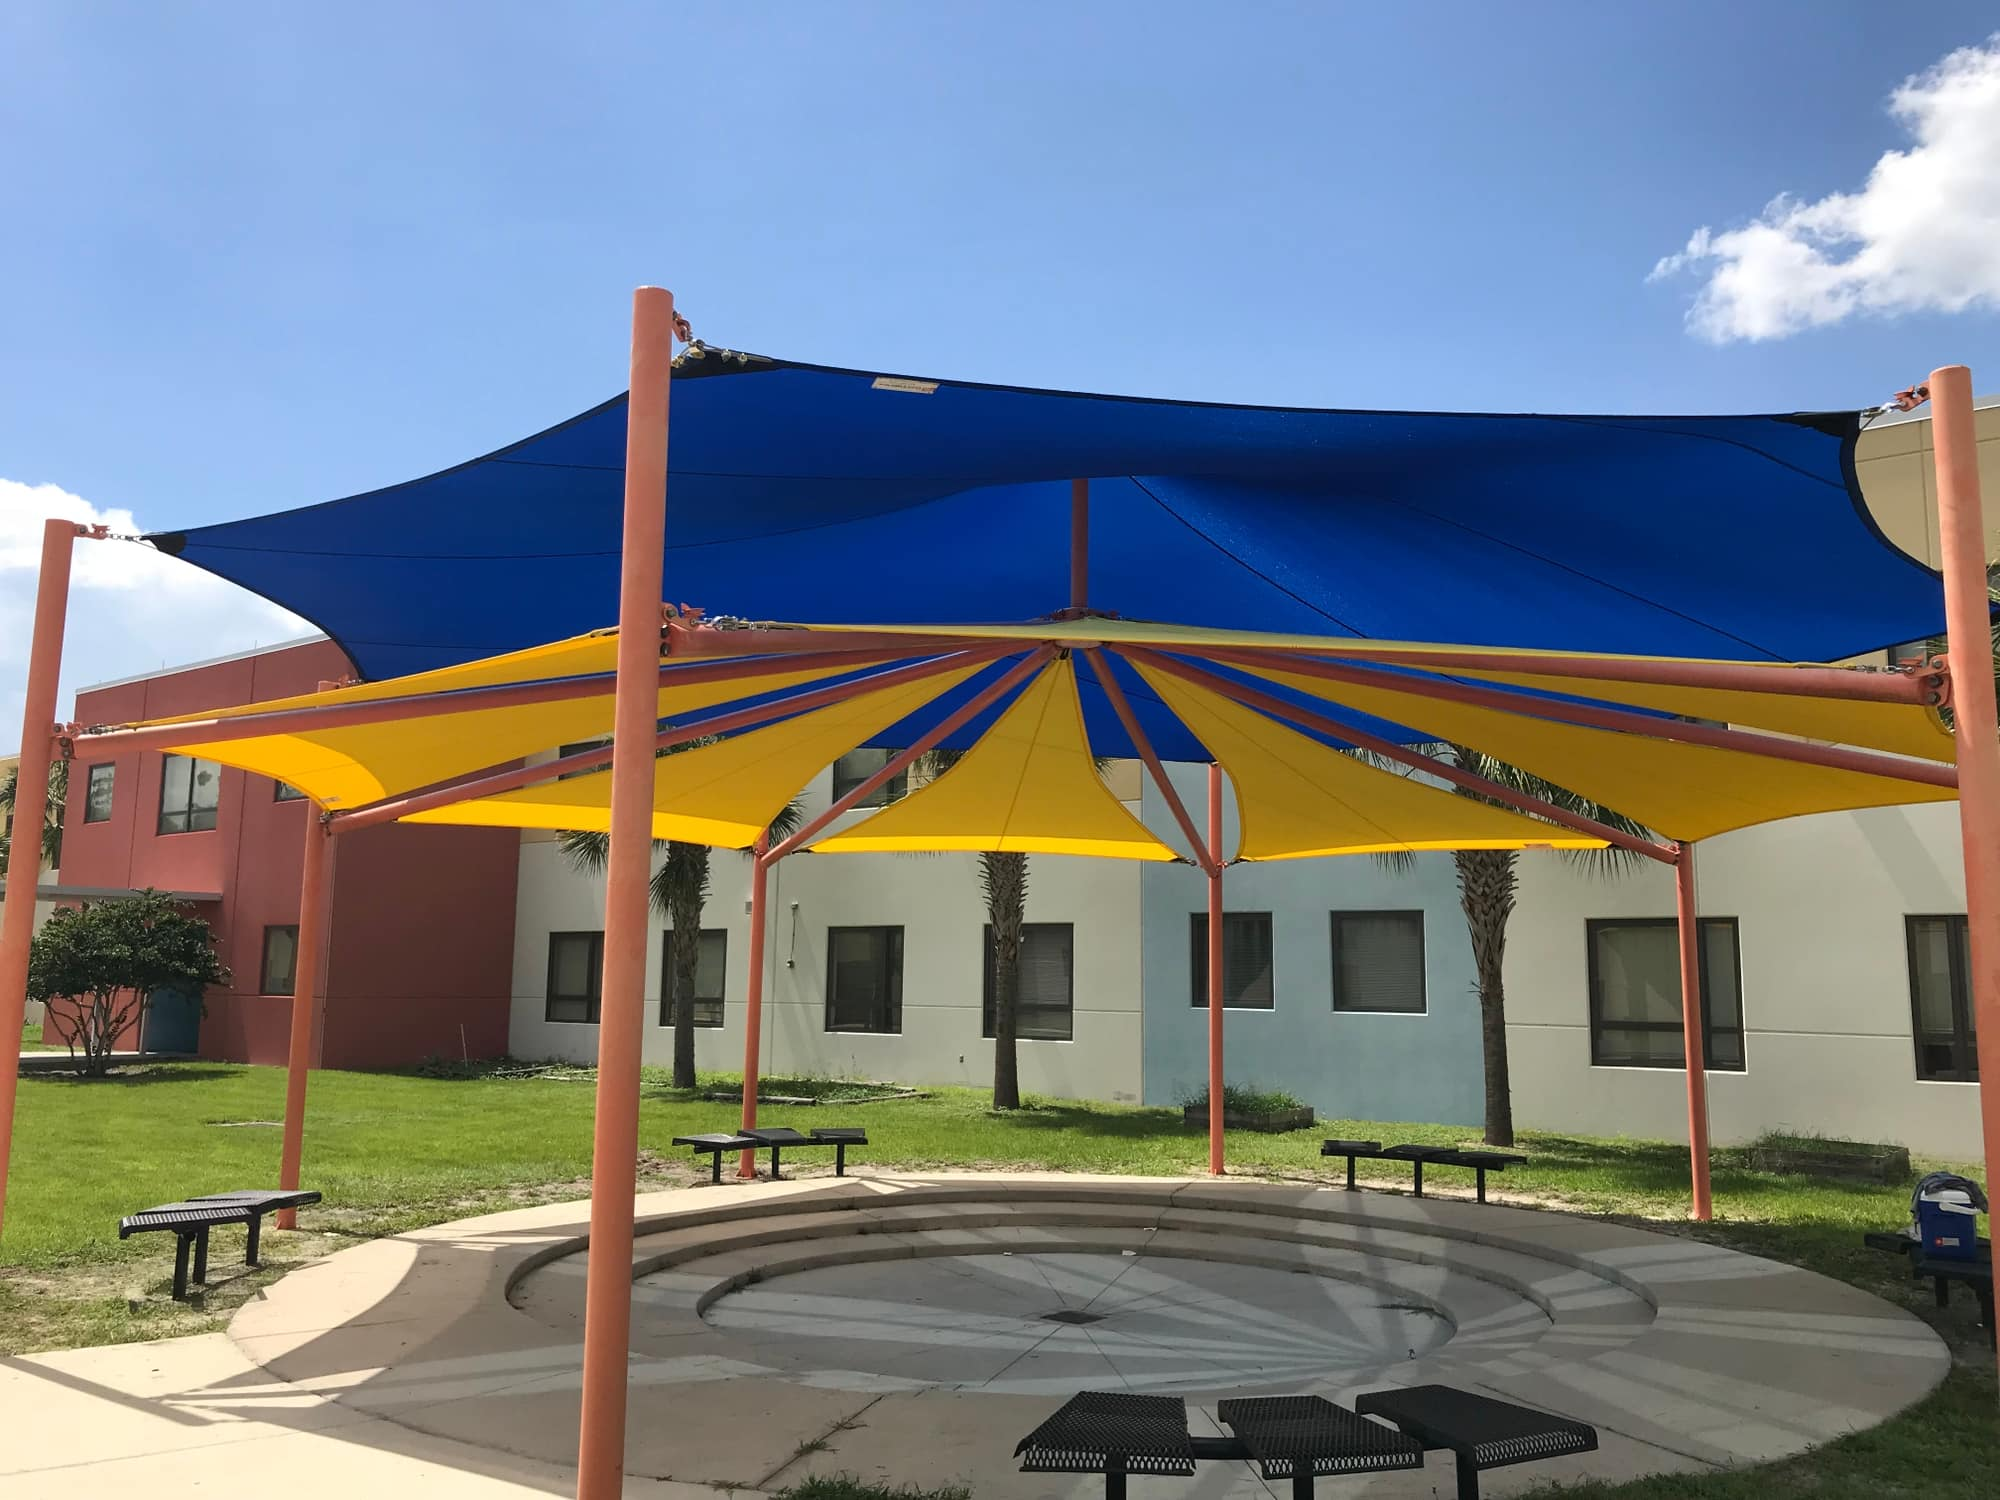 image of shade structure covering seating area